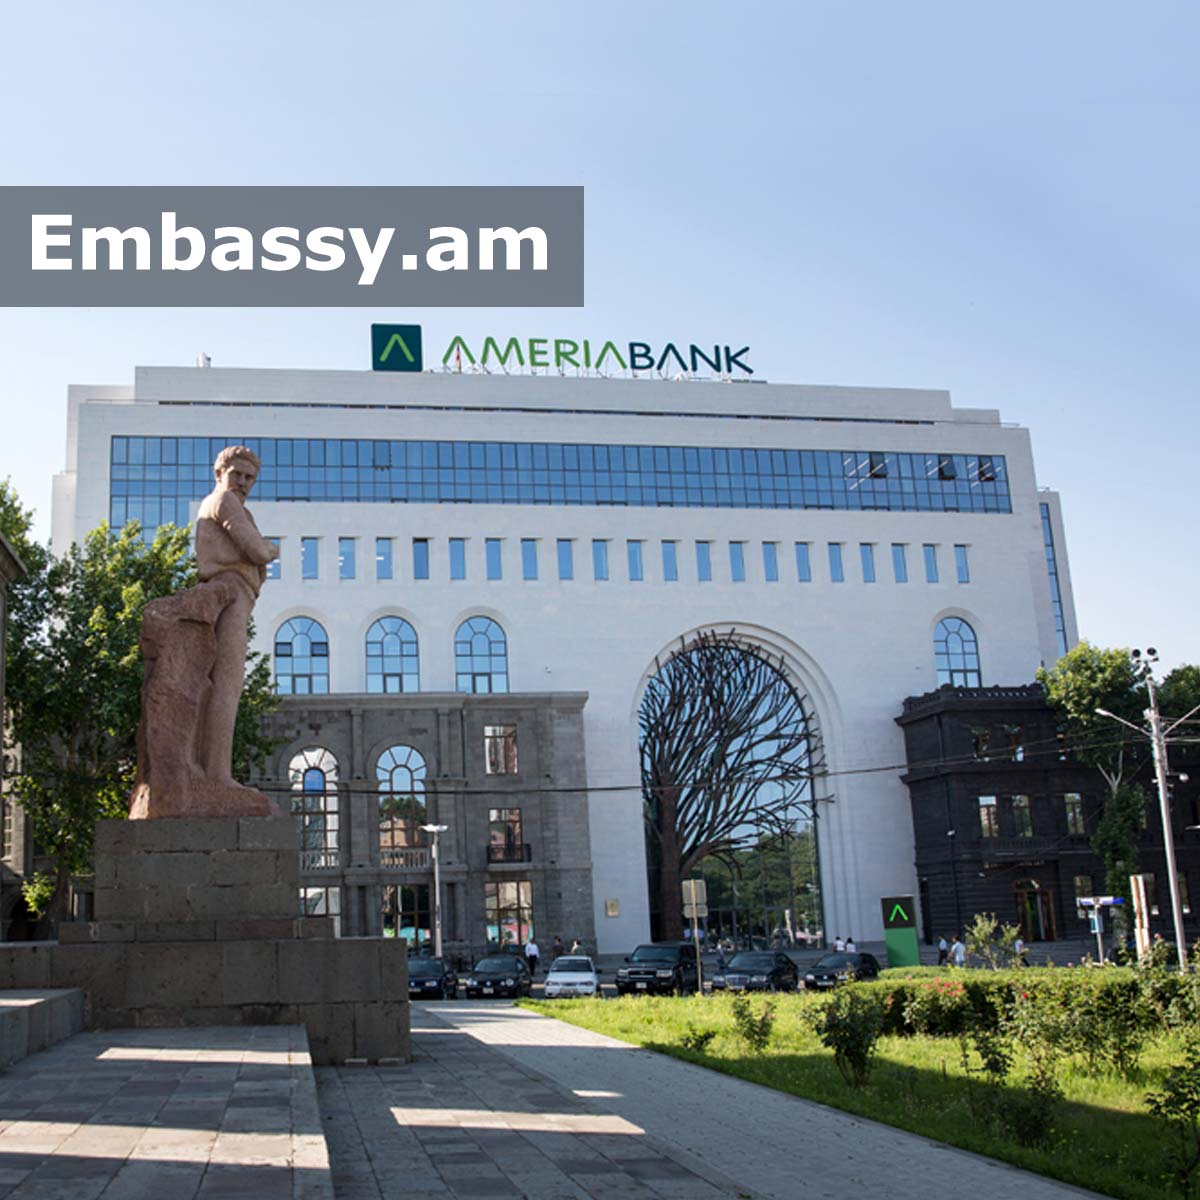 Office of the Asian Development Bank in Armenia: www.embassy.am